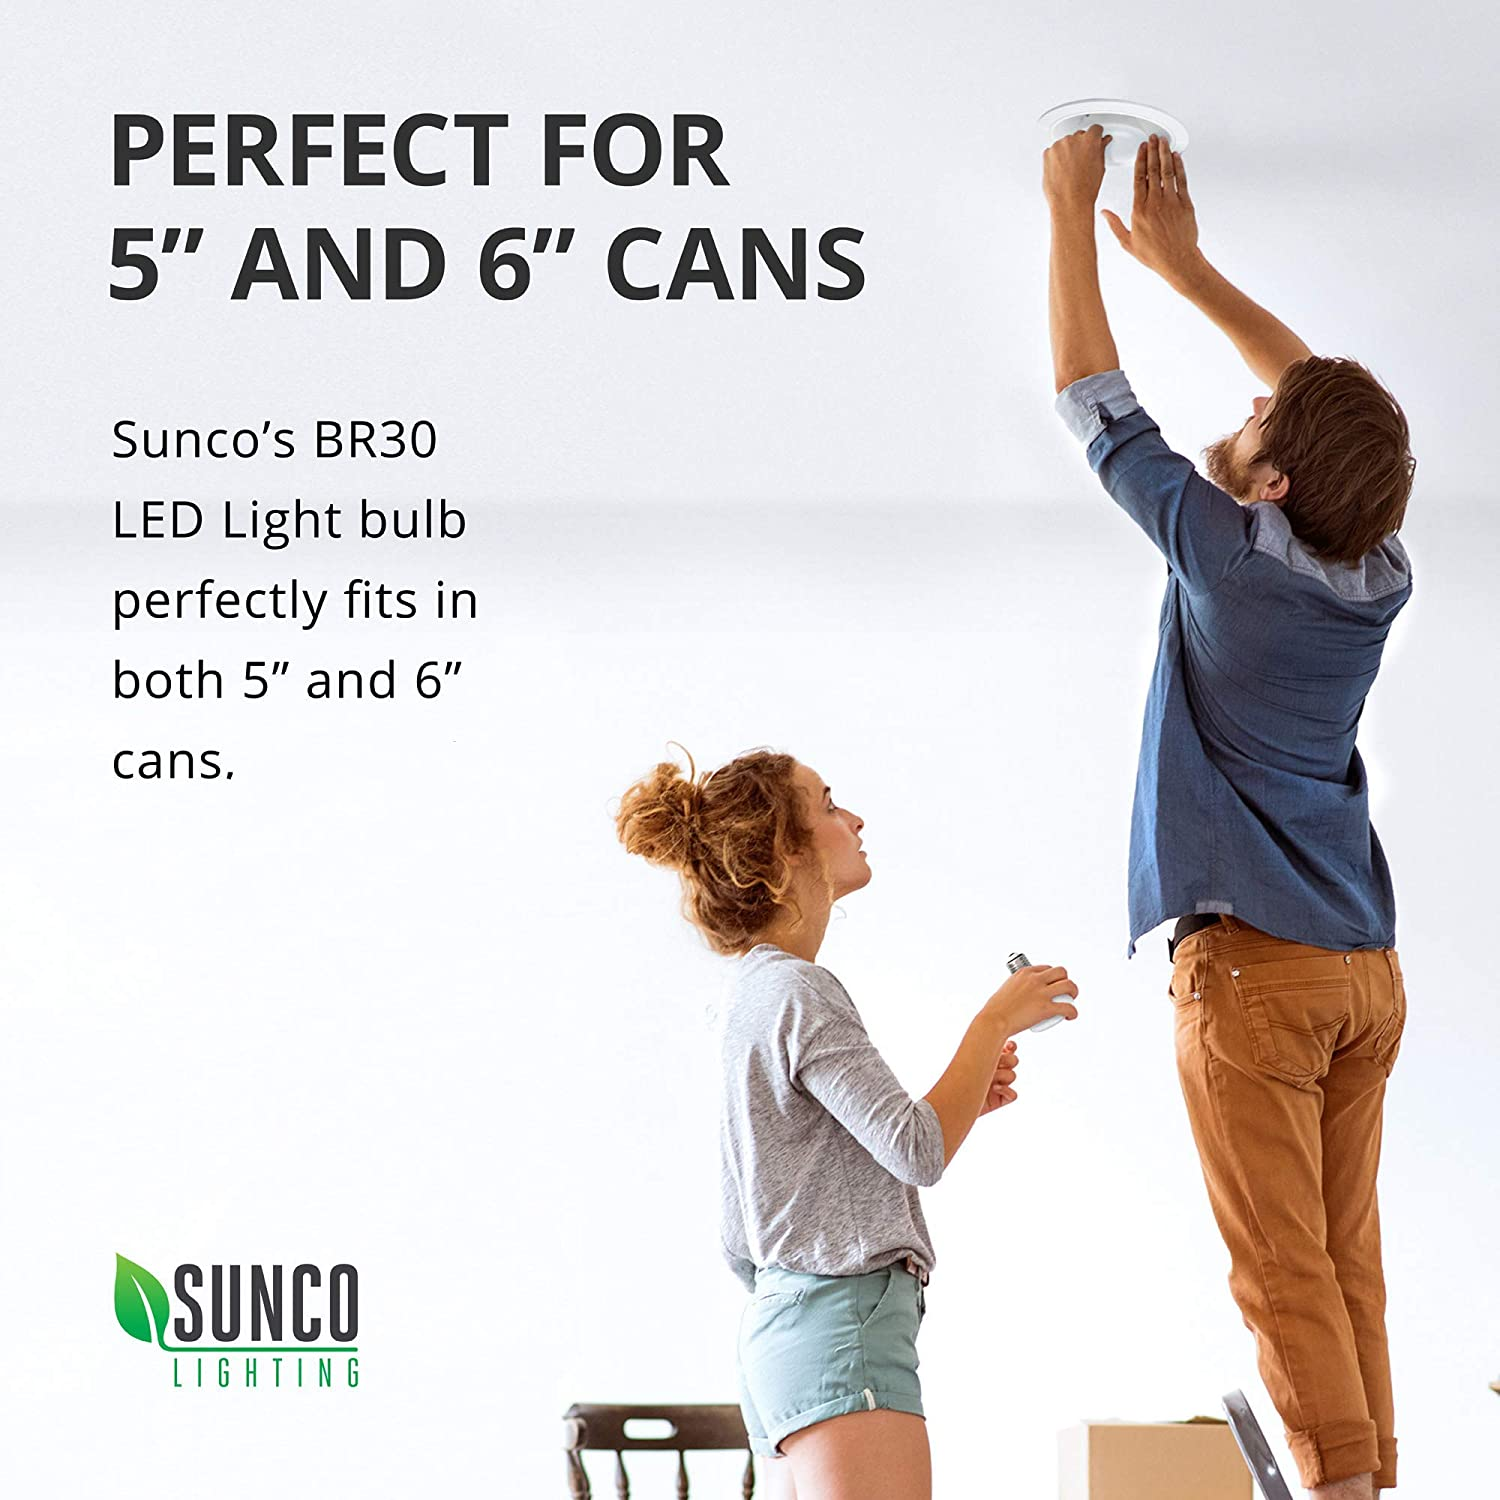 2700K Soft White UL /& Energy Star Sunco Lighting 6 Pack BR30 LED Bulb 11W=65W Dimmable 850 LM Indoor Flood Light for Cans Renewed E26 Base